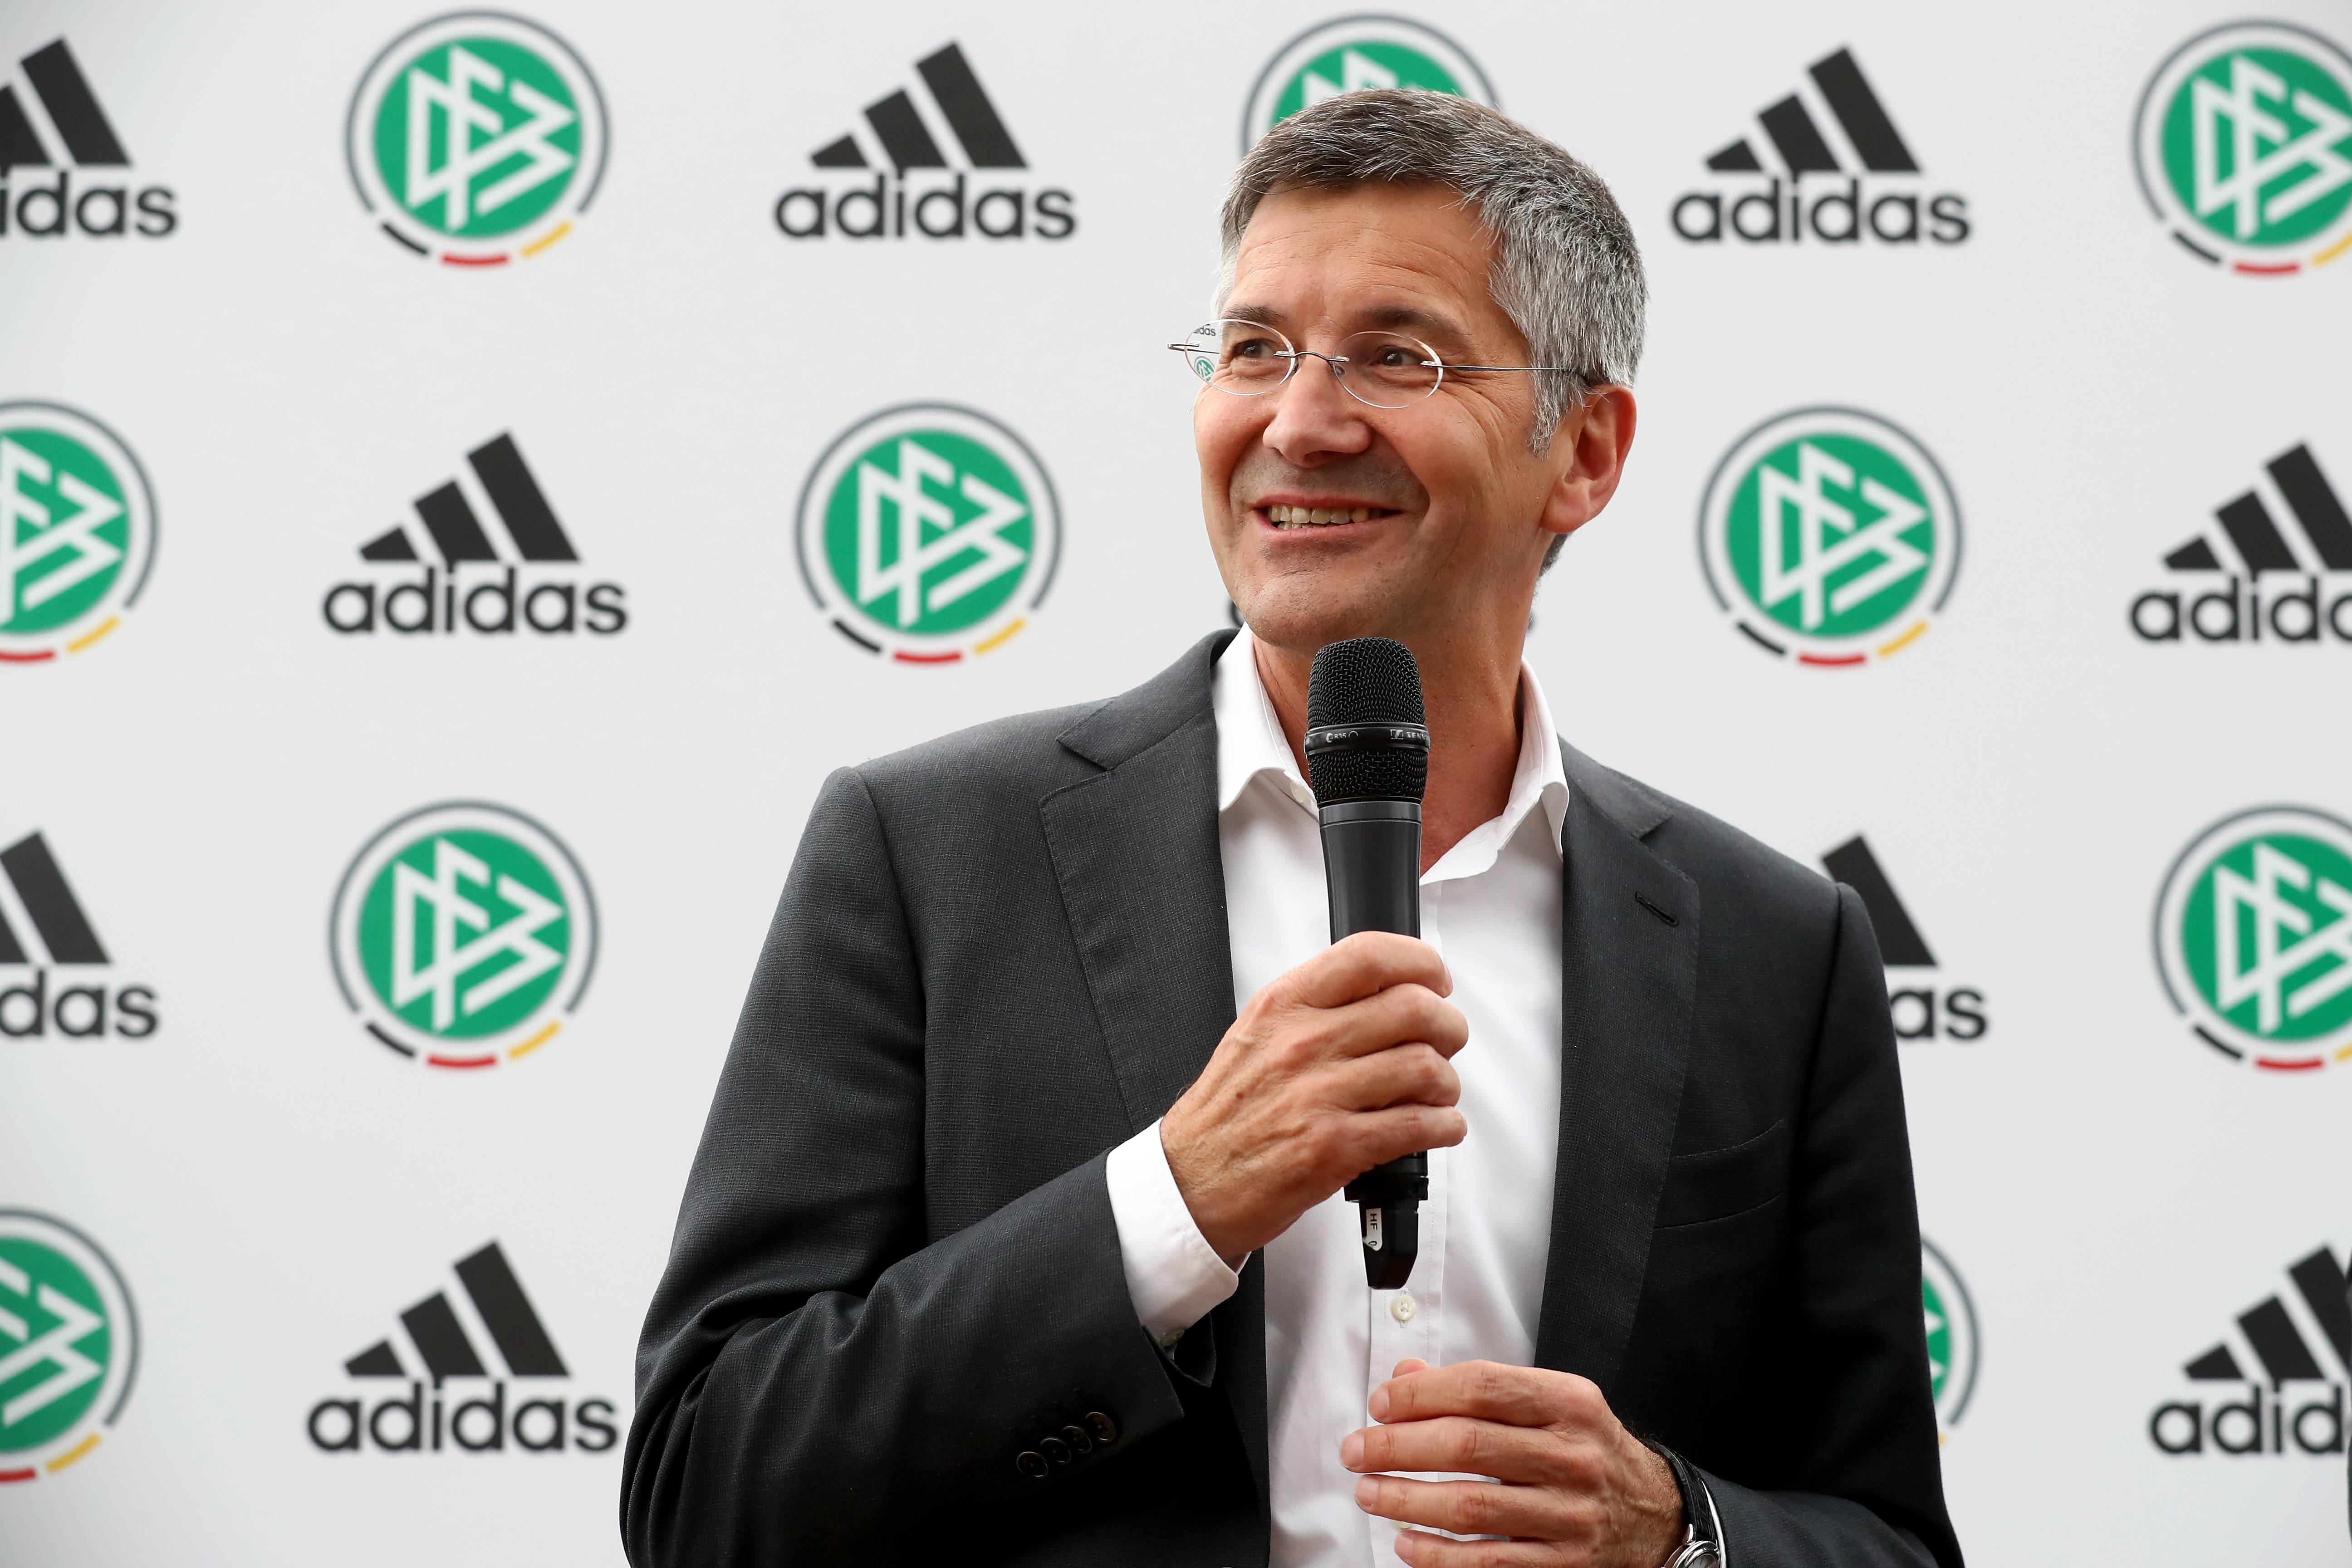 Outgoing Adidas CEO Herbert Hainer Says